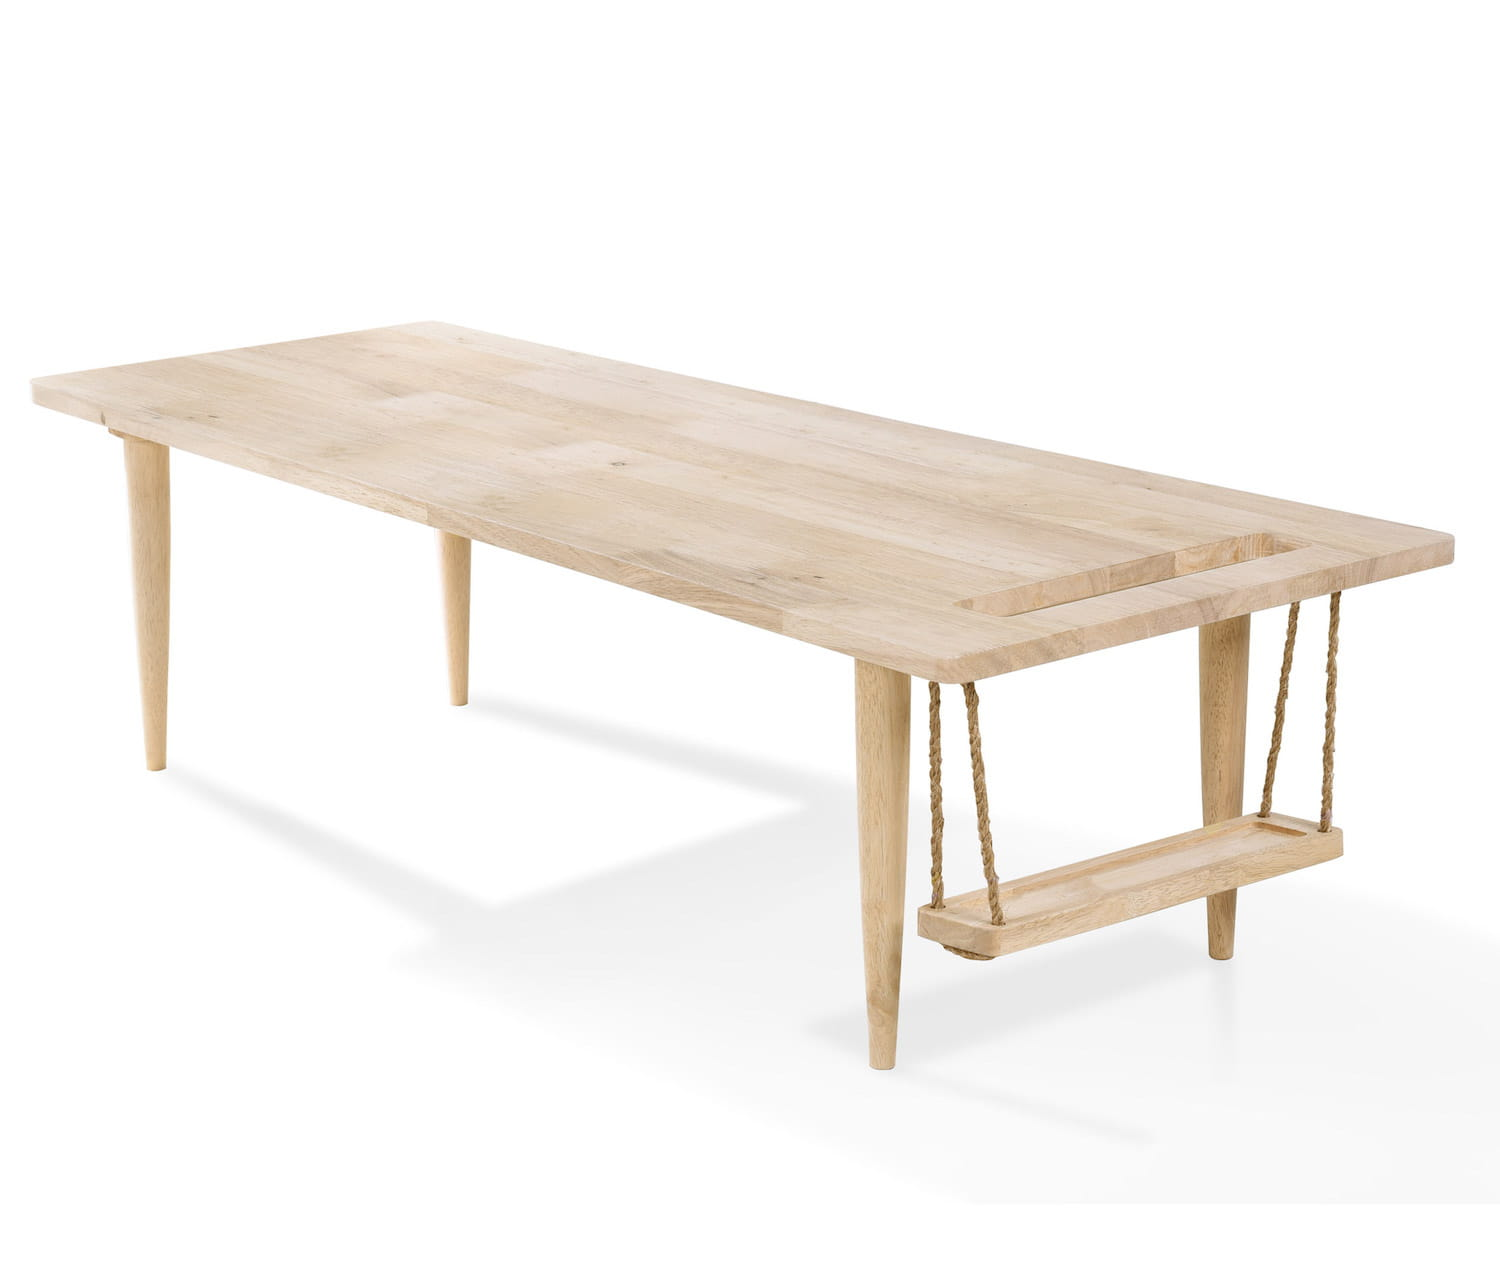 Une table basse originale for Table basse avec une palette